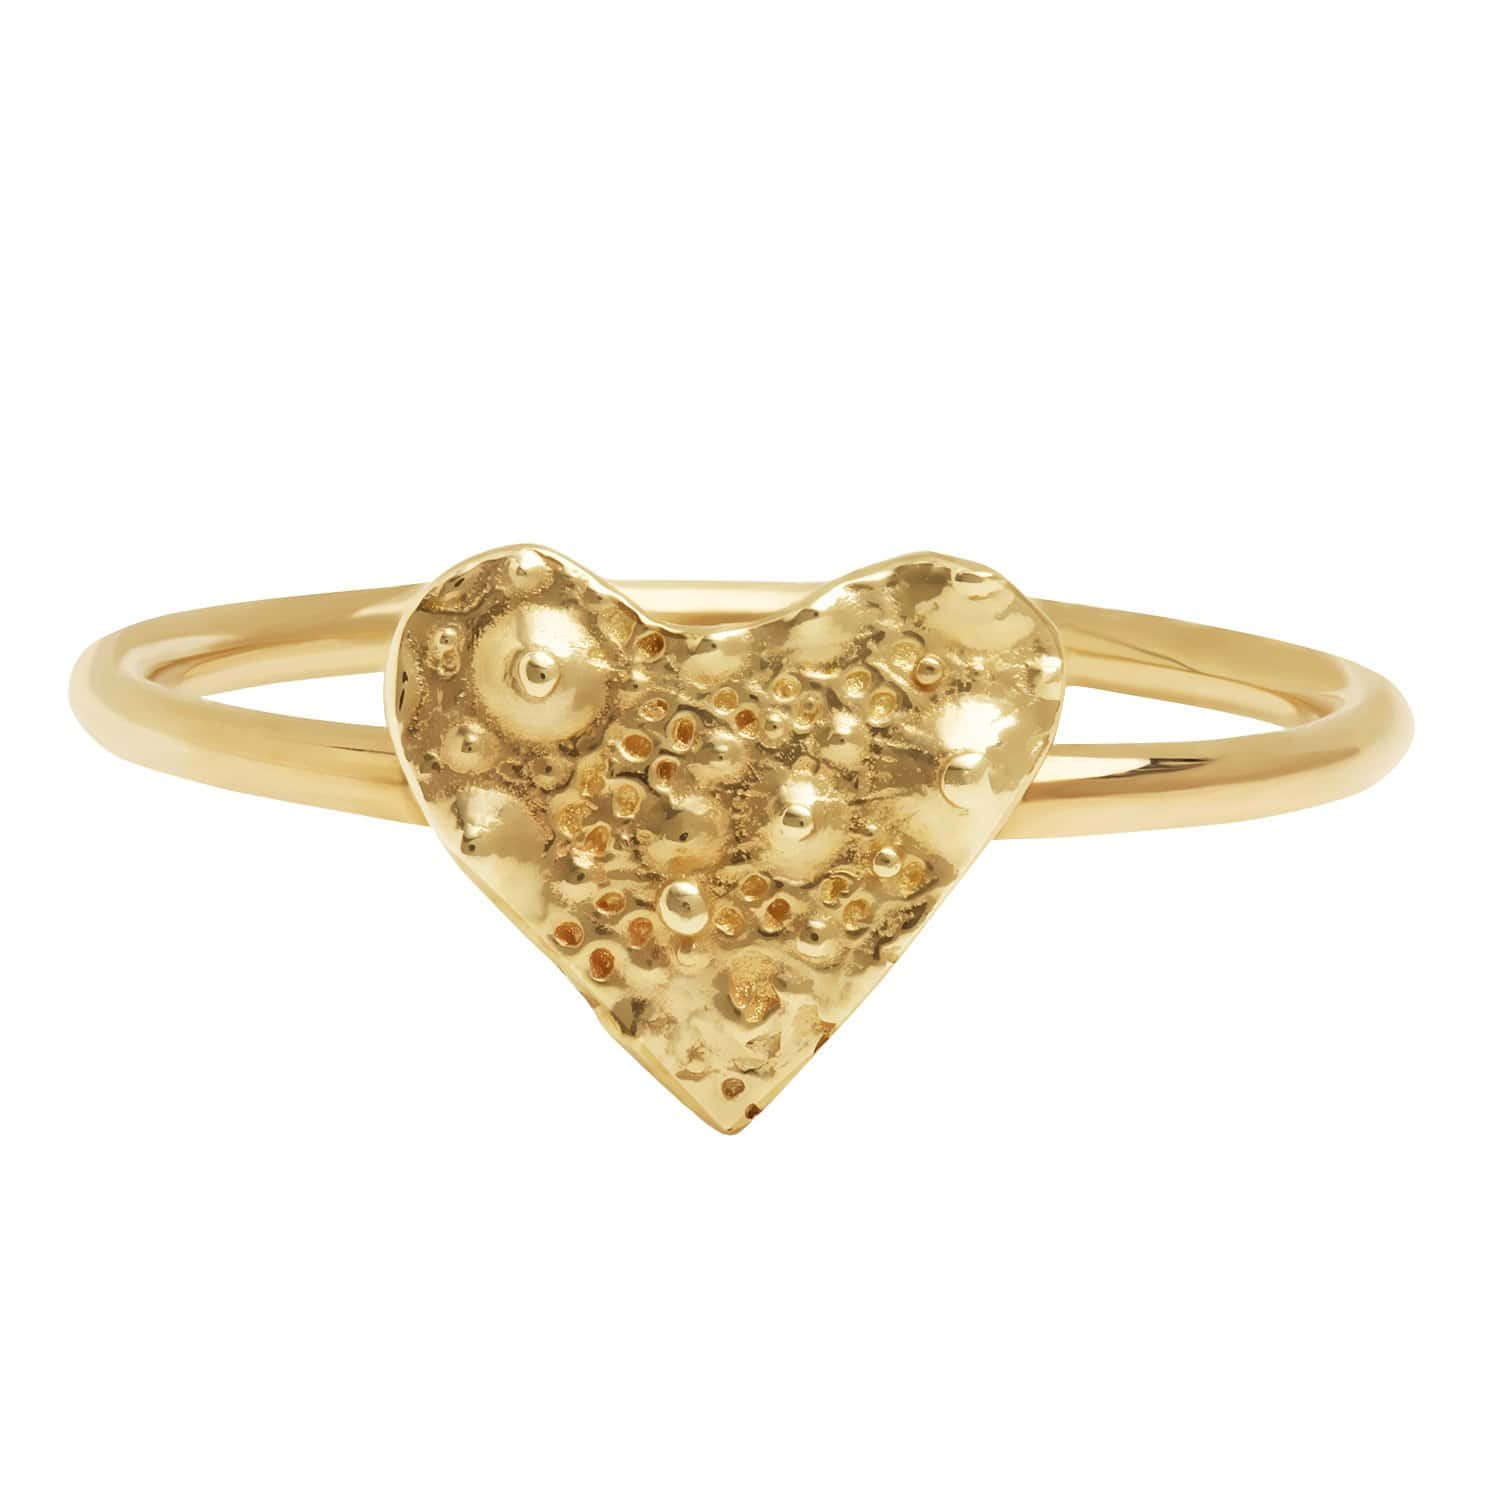 Caitlin Nicole sea urchin gold heart textured ring